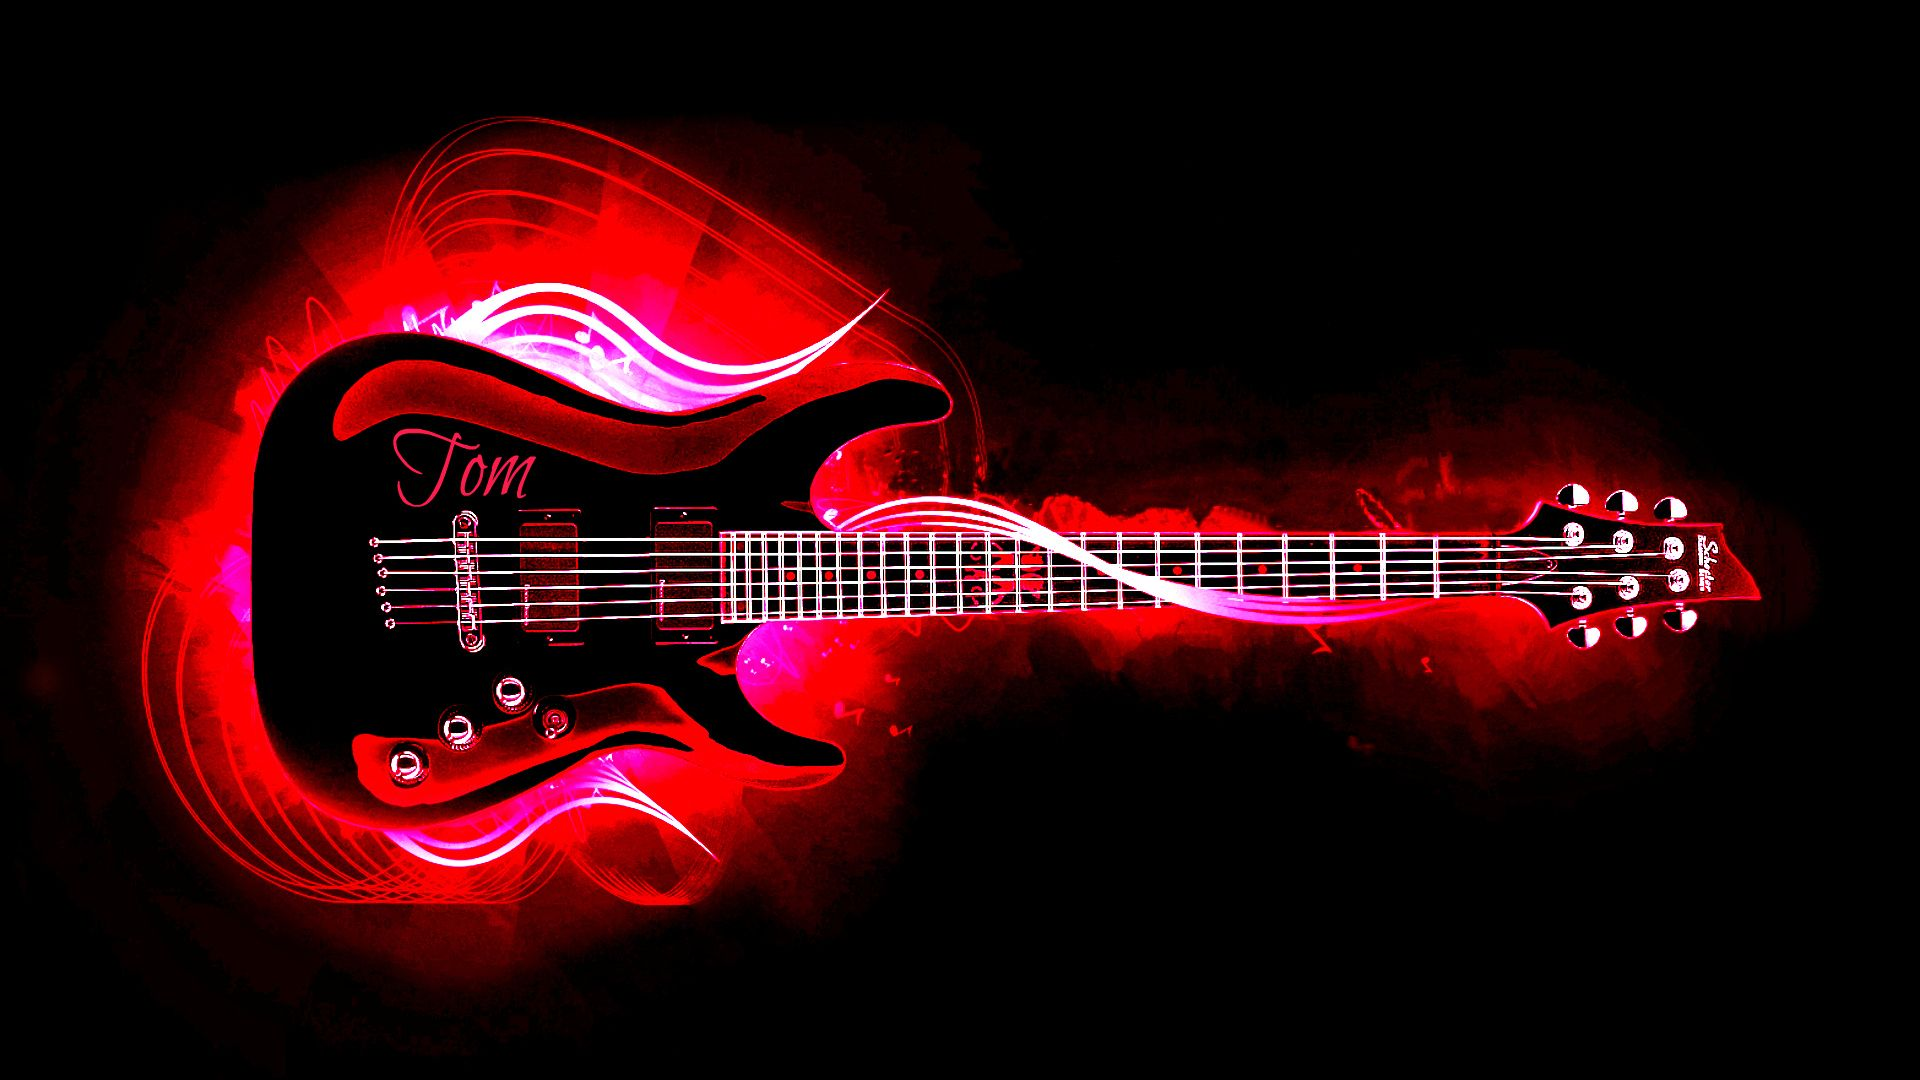 621 Guitar Hd Wallpapers Backgrounds Wallpaper Abyss Guitar Images Guitar Music Guitar